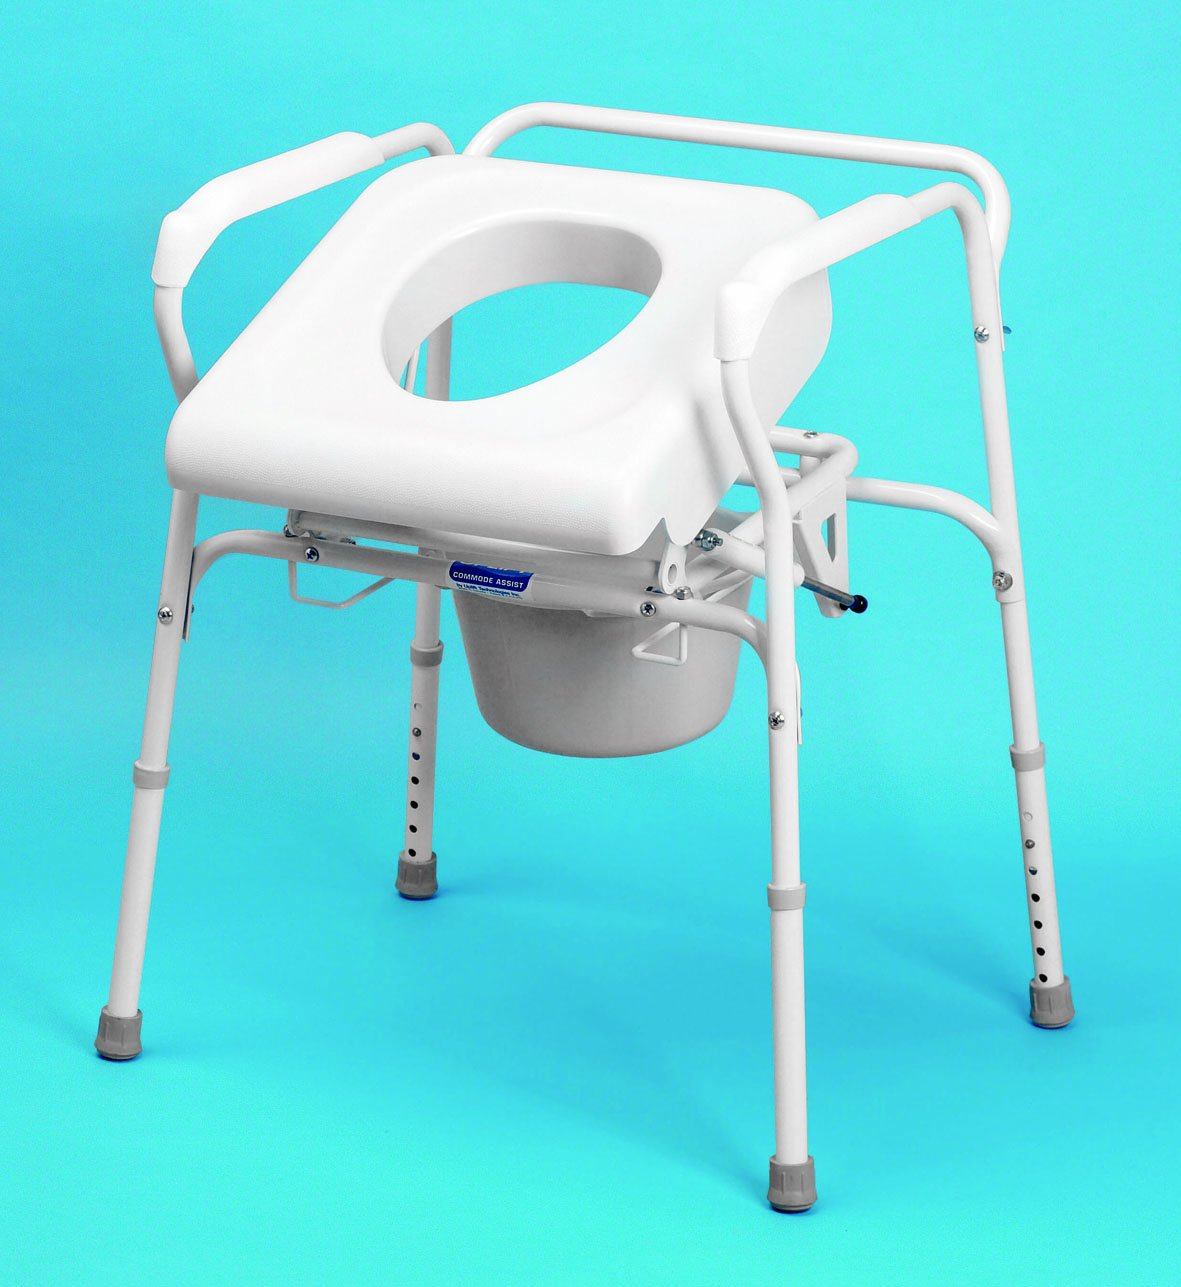 Superb Performance Health Uplift Height Adjustable Commode Assist Caraccident5 Cool Chair Designs And Ideas Caraccident5Info